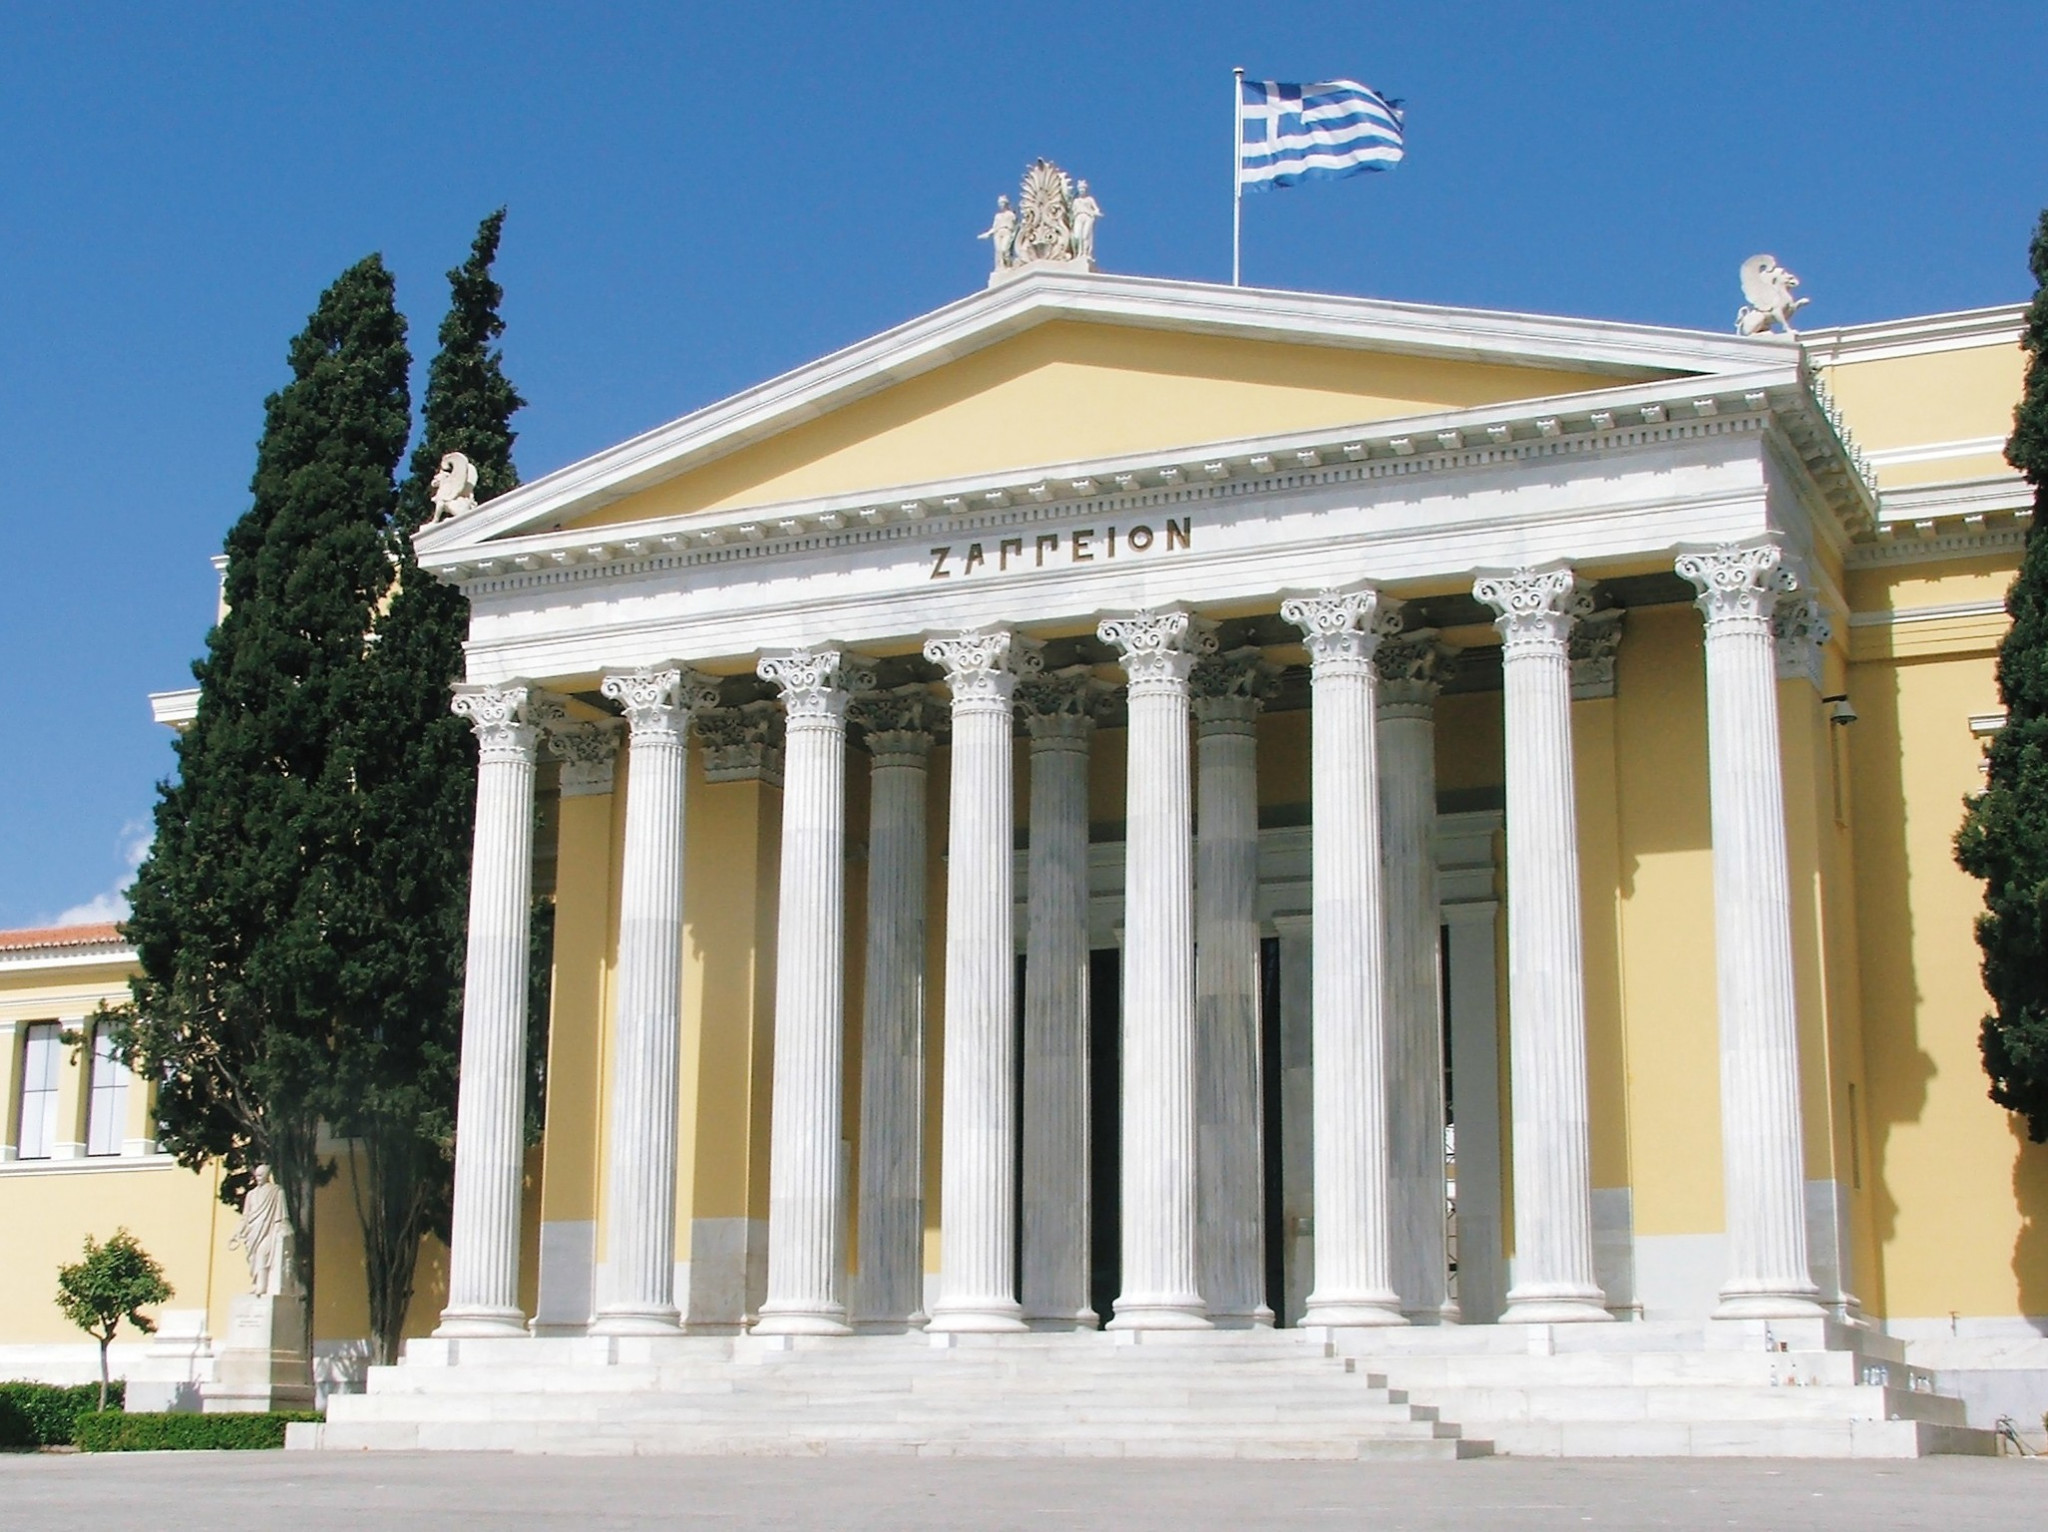 The Zappeion was used during the 1896 Olympic Games in Athens ©Philip Barker